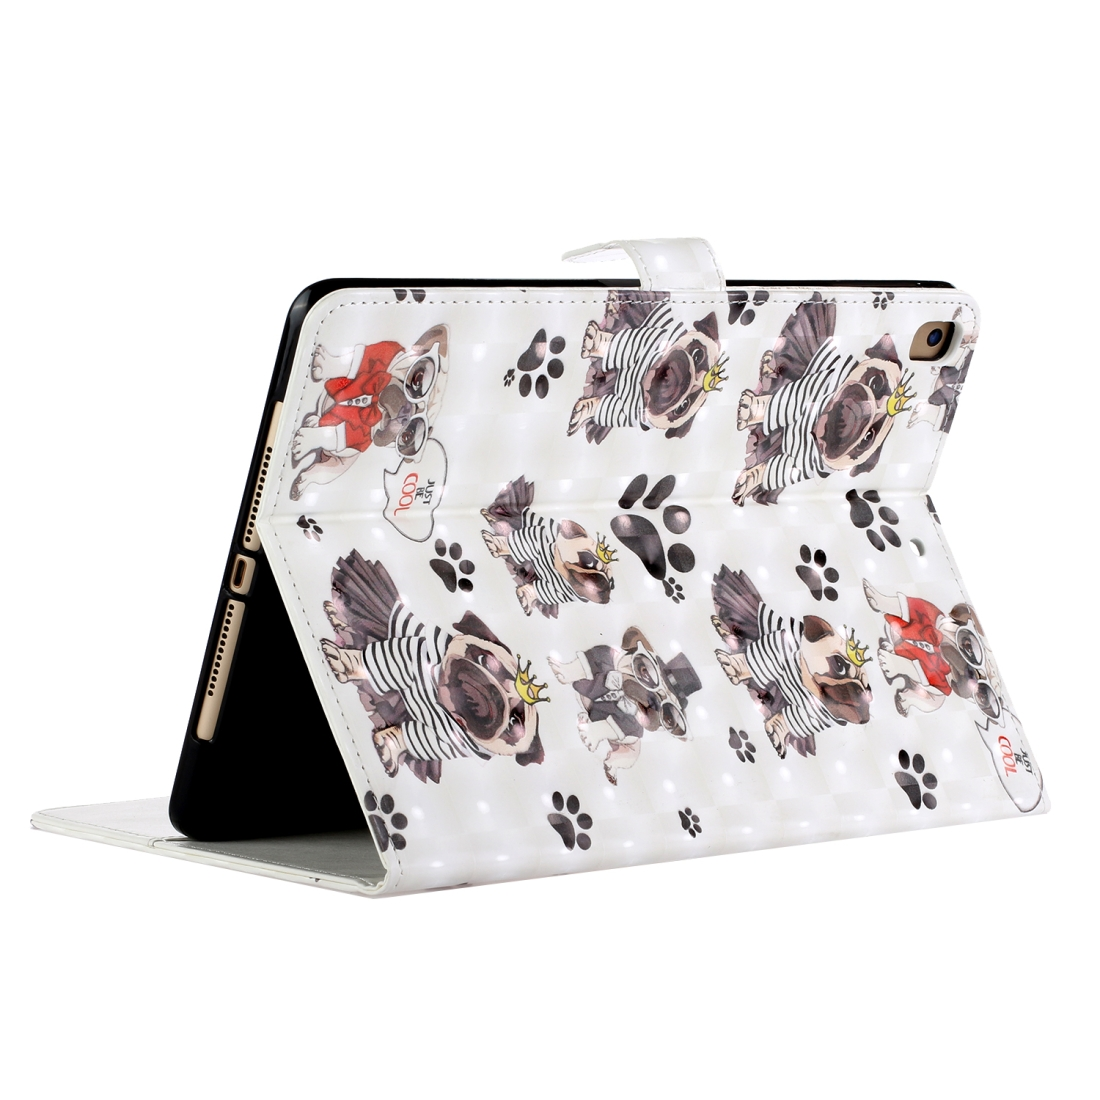 Leather iPad Air Case Also Fits Air 2, iPad 9.7 (2017), iPad 9.7 (2018), Auto Sleep (Dog)